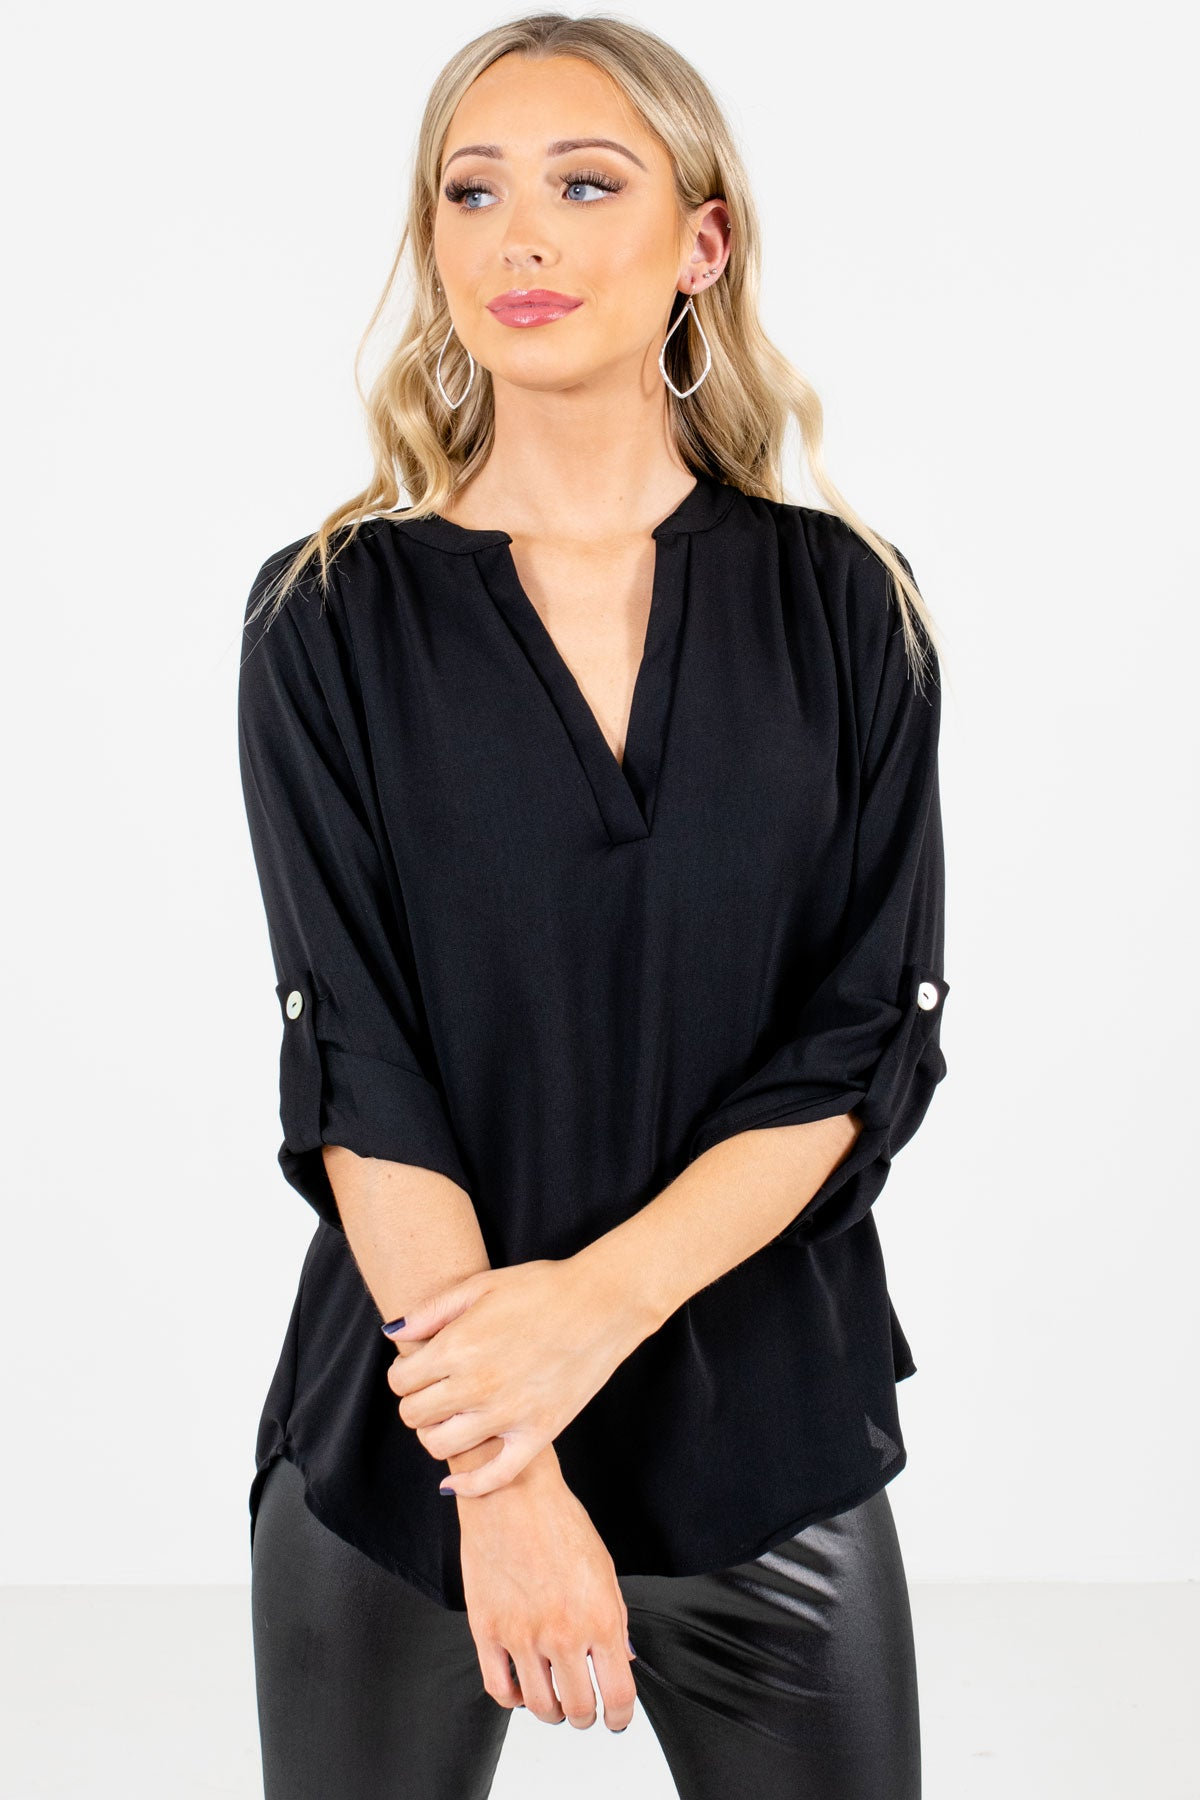 Black Split V-Neckline Boutique Blouses for Women